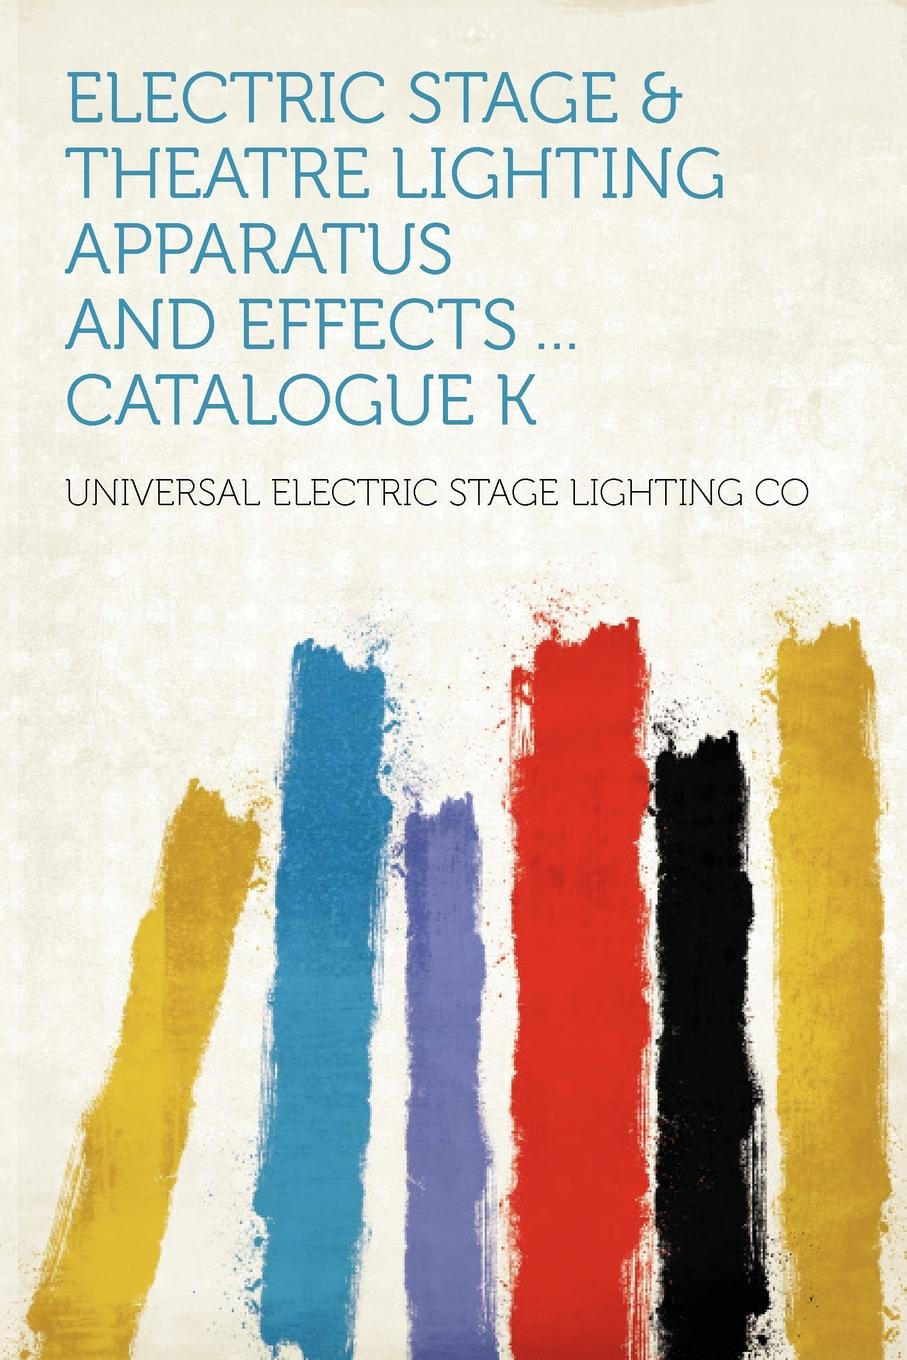 Electric Stage . Theatre Lighting Apparatus and Effects ... Catalogue K.